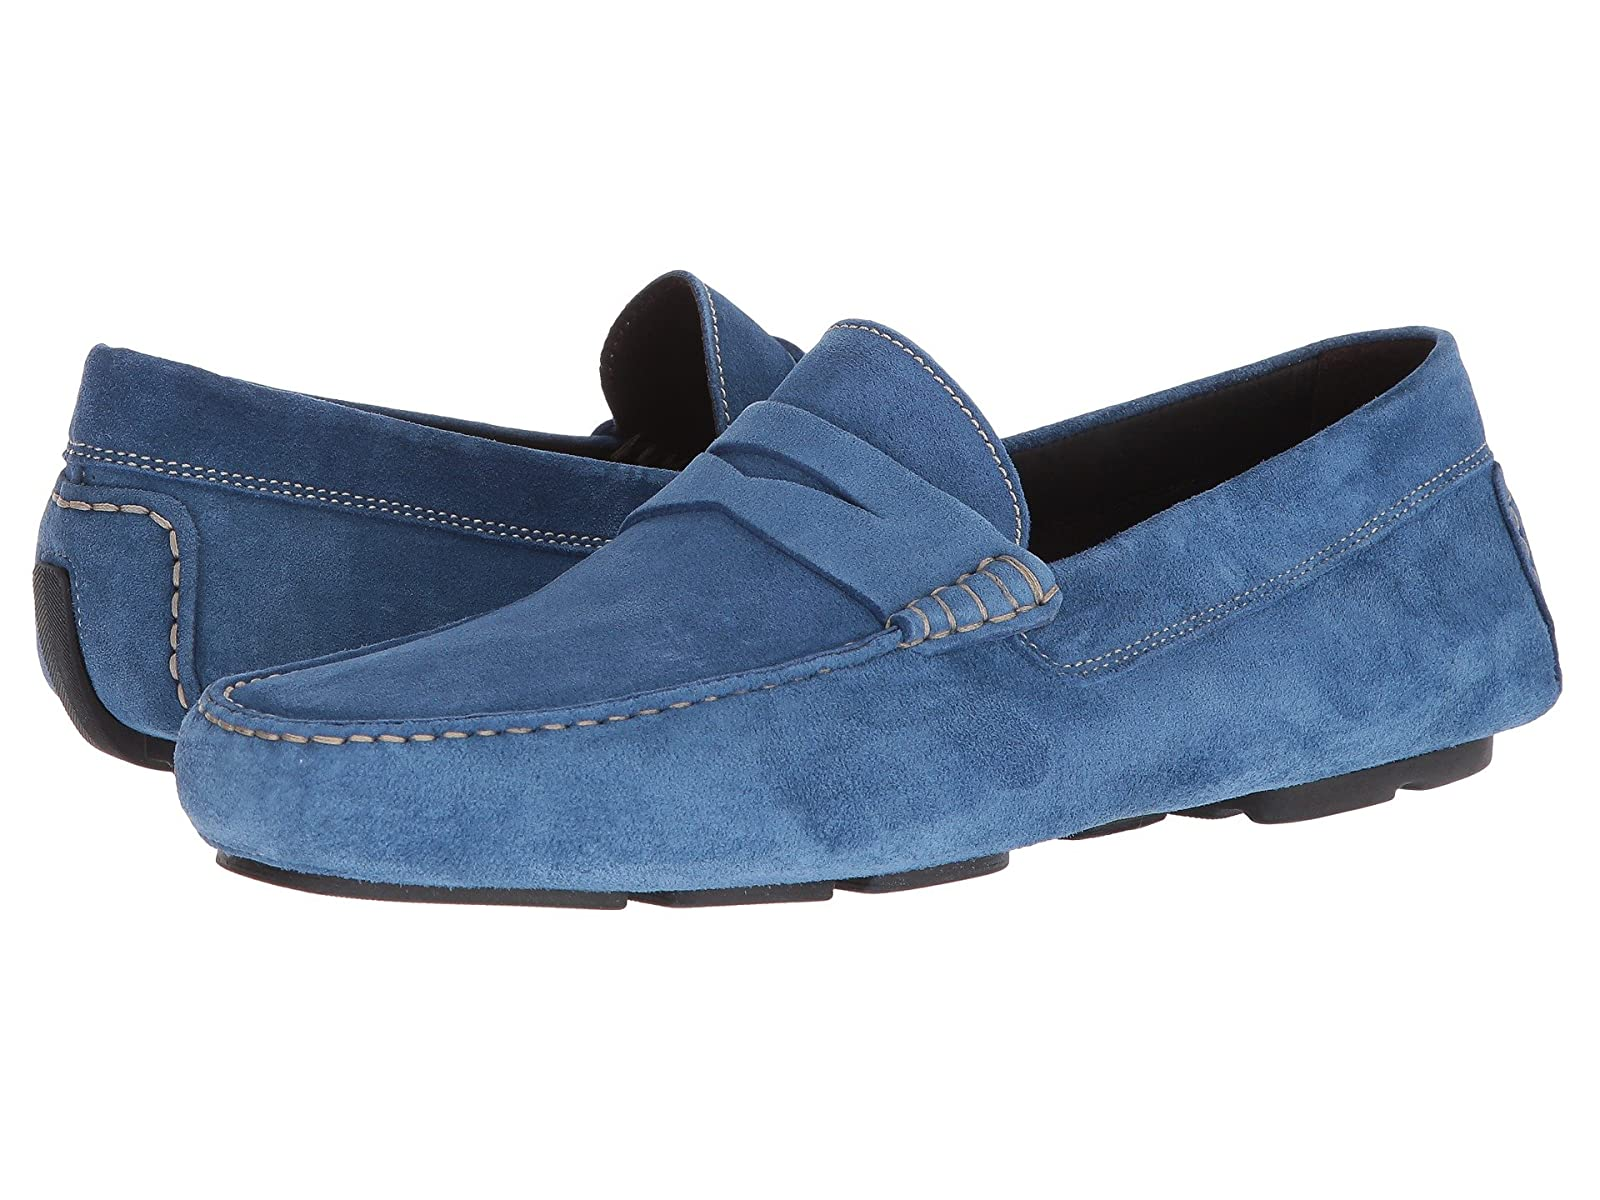 To Boot New York JacksonAtmospheric grades have affordable shoes